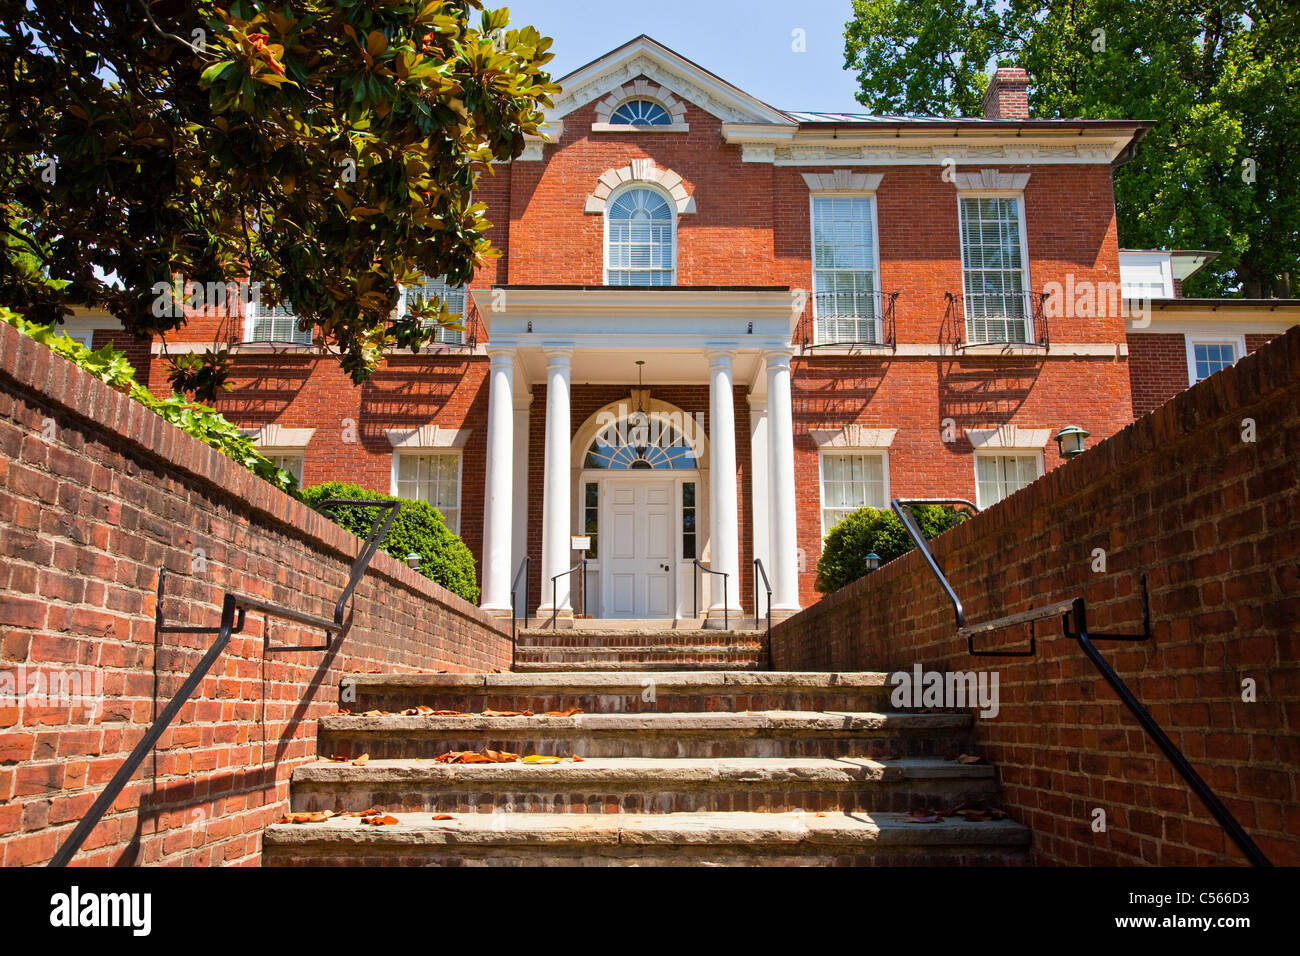 Historic Dumbarton House museum and headquarters of the National Society of Colonial Dames of America, Washington - Stock Image